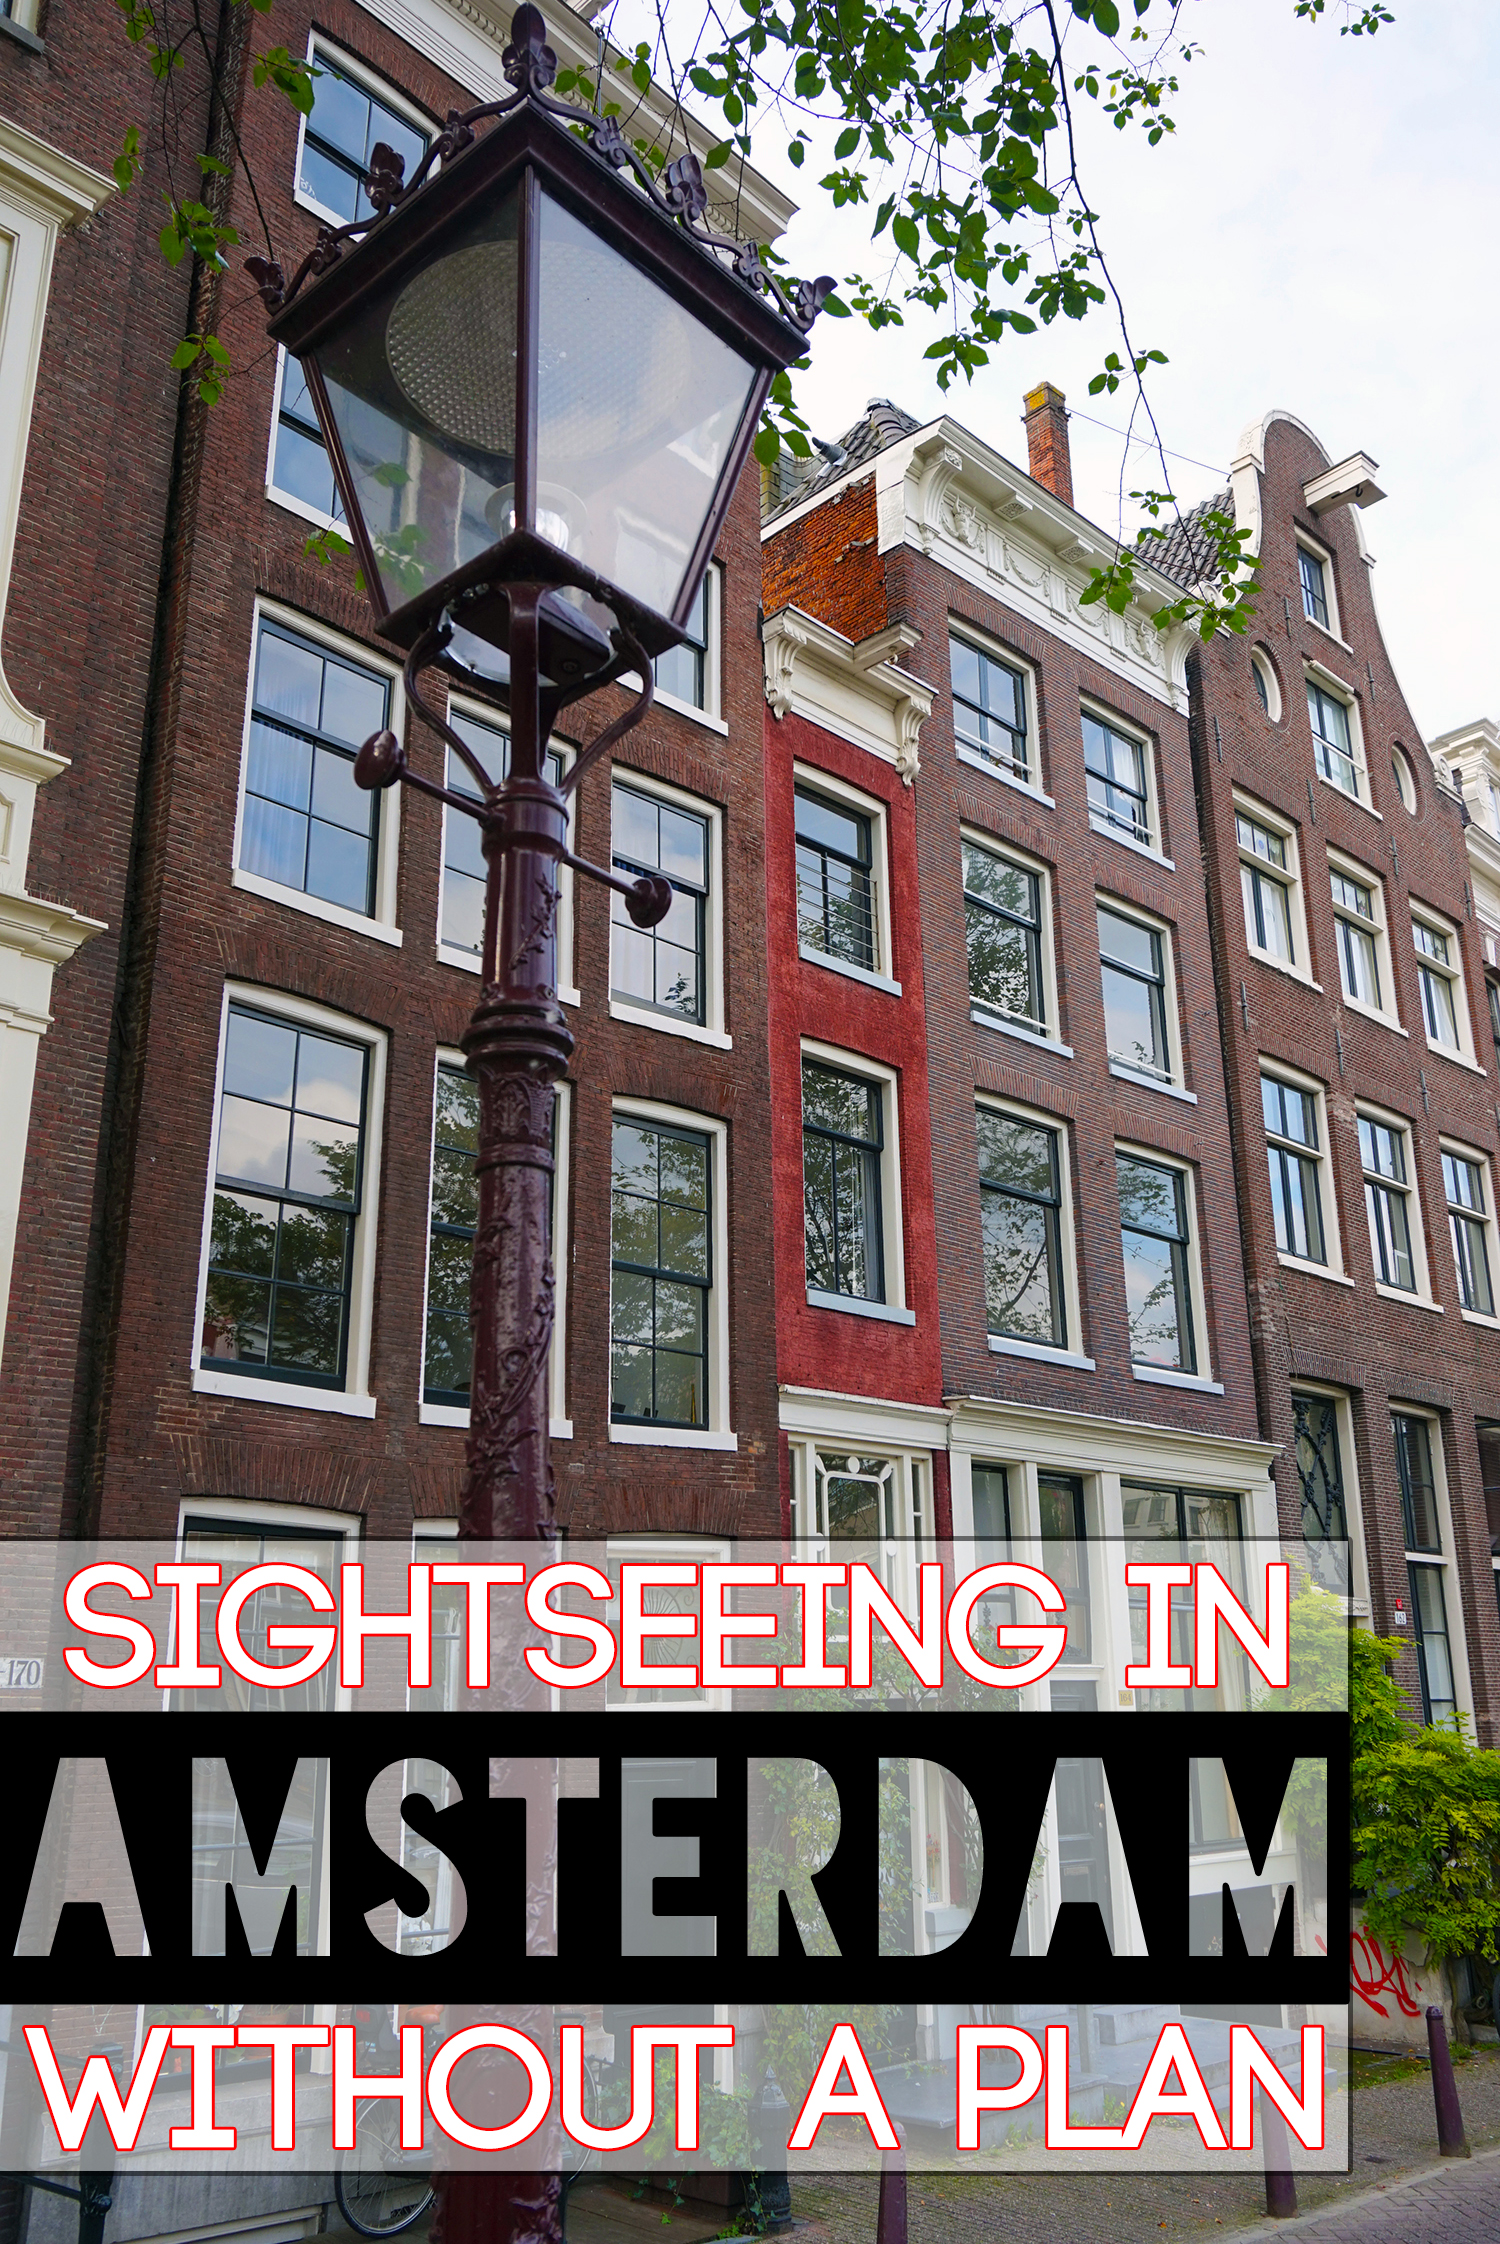 sightseeing in Amsterdam without a plan